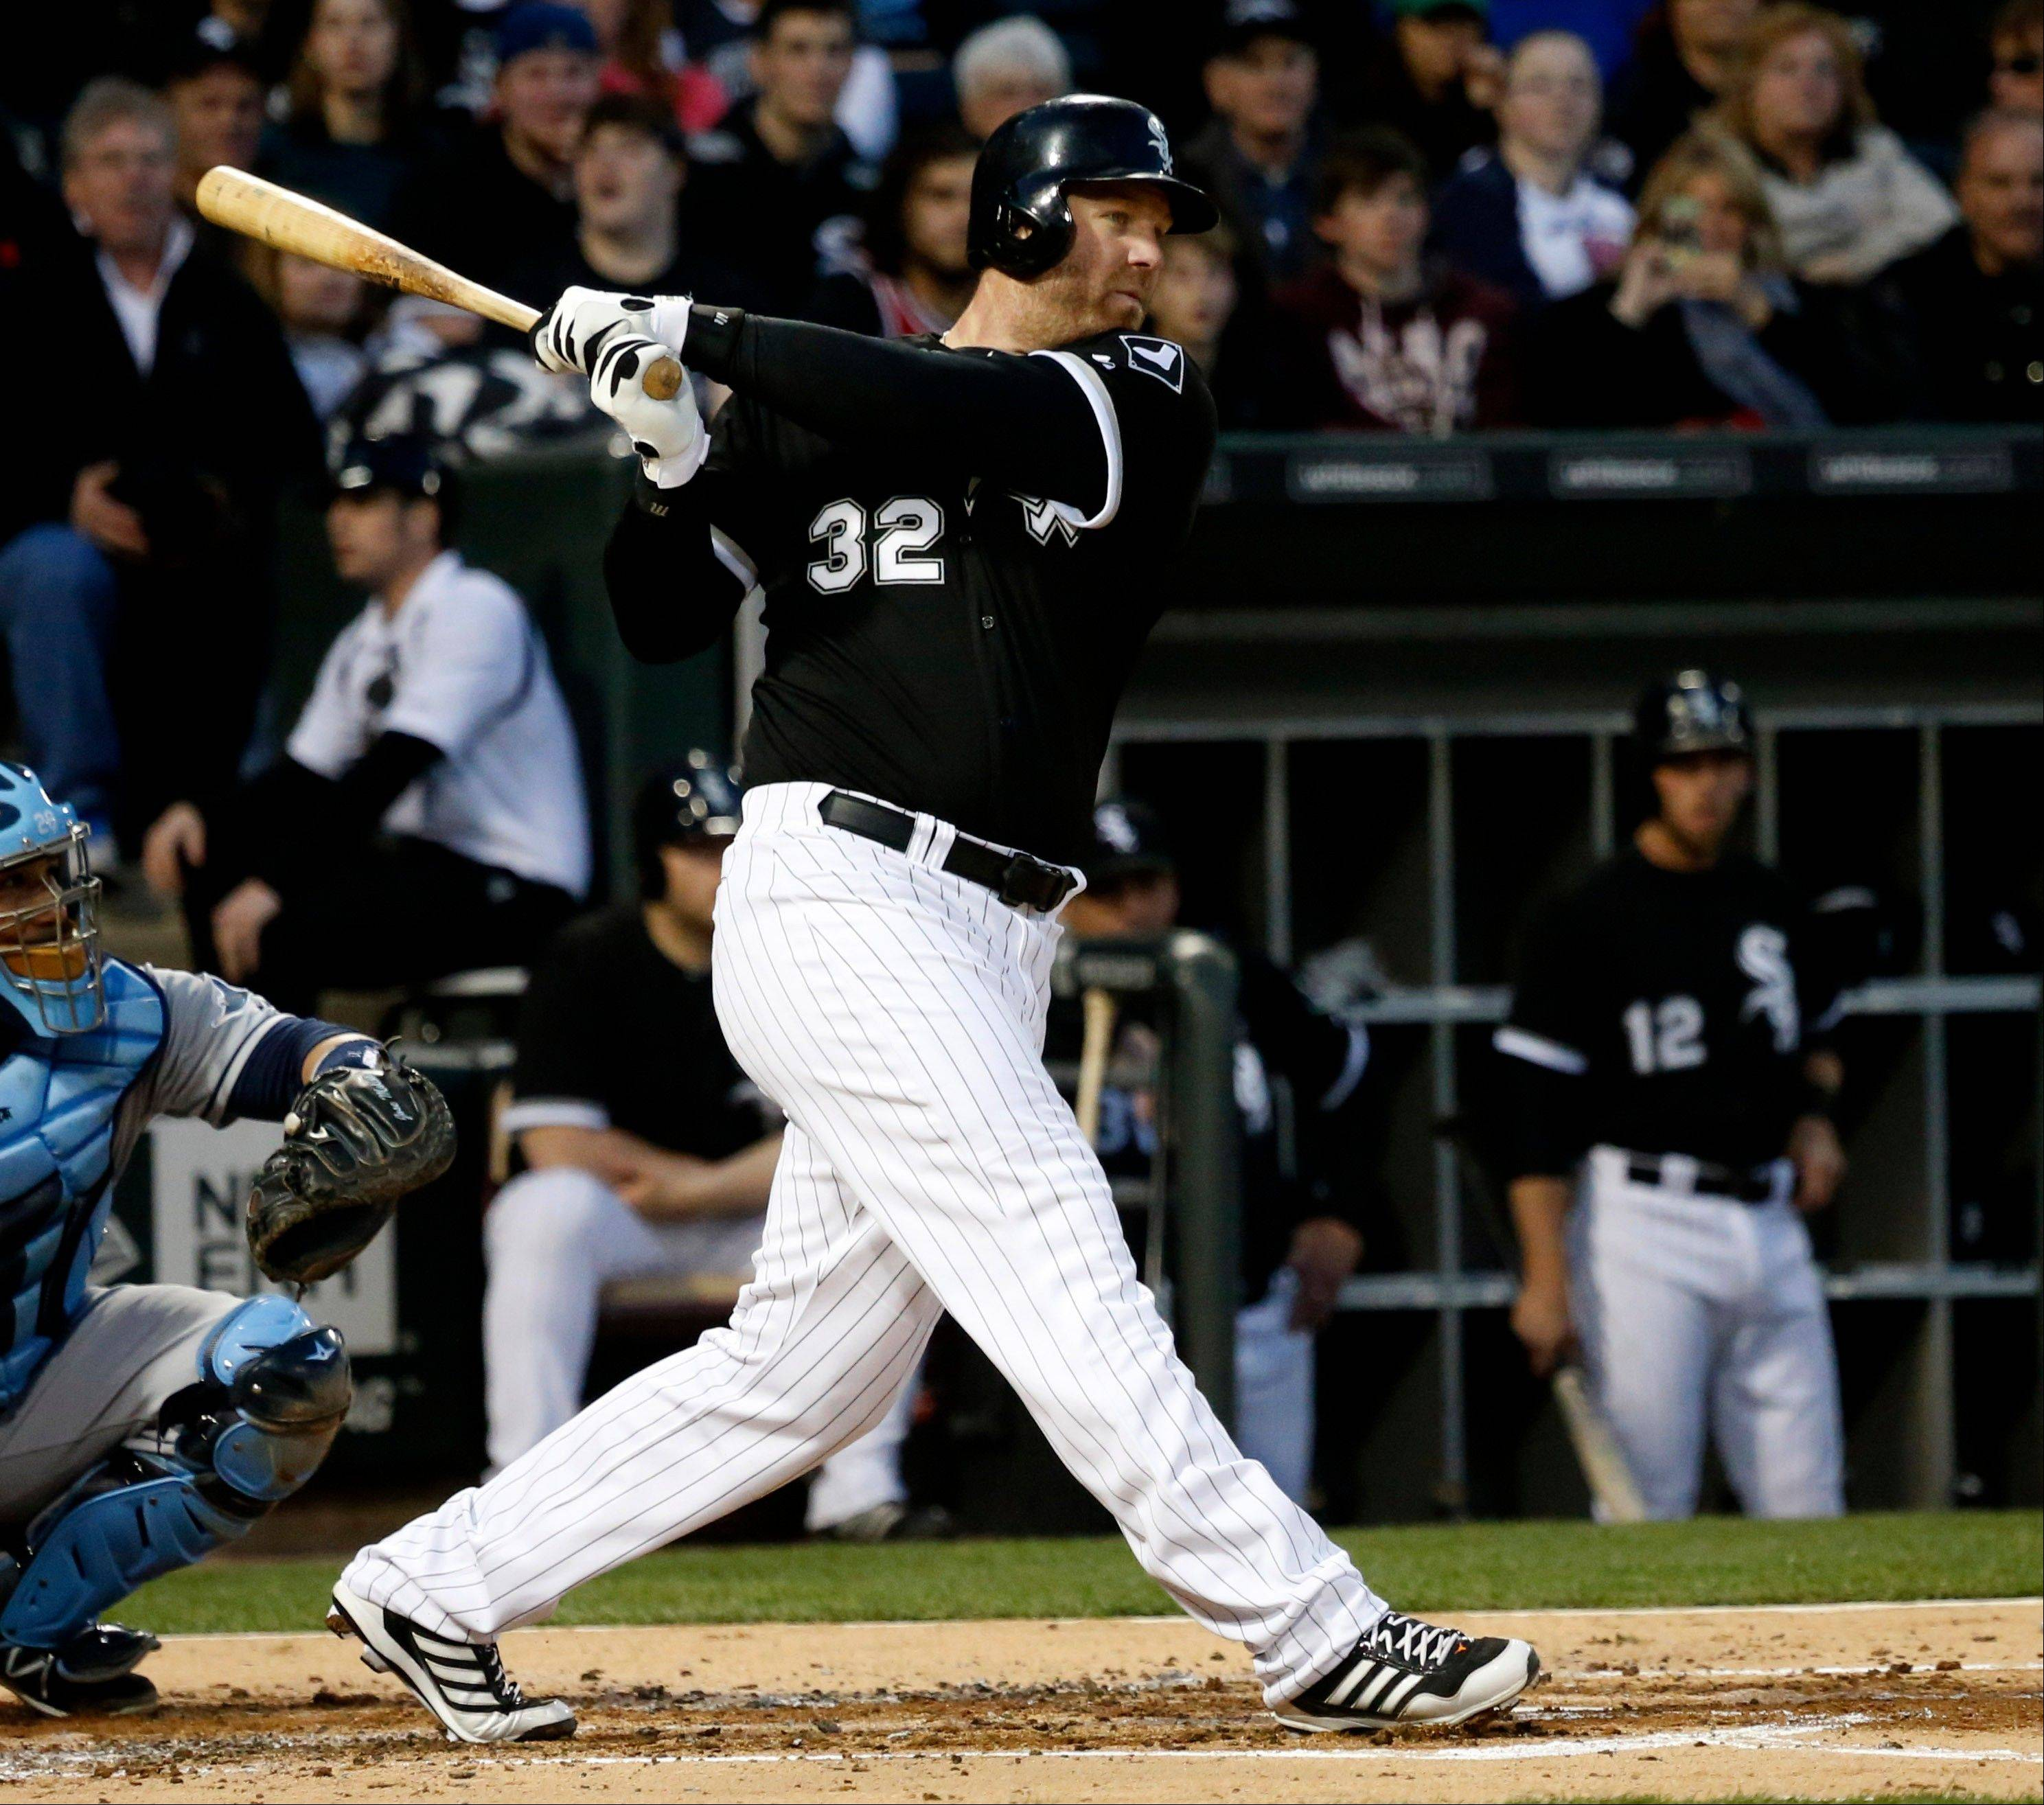 After a difficult start, White Sox designated hitter Adam Dunn finally had a good weekend at the plate.